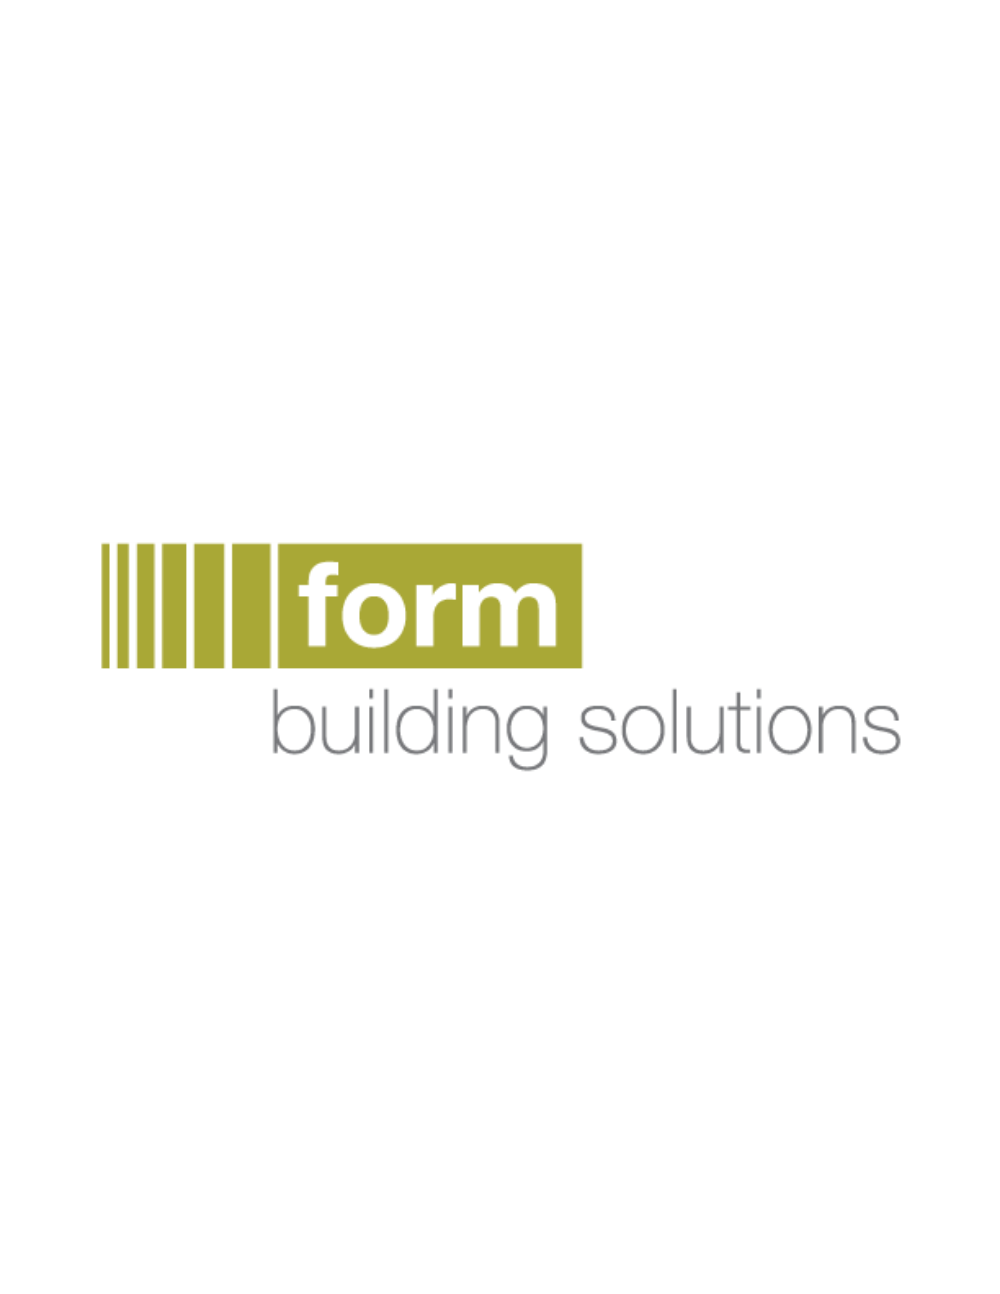 FORM Building Solutions